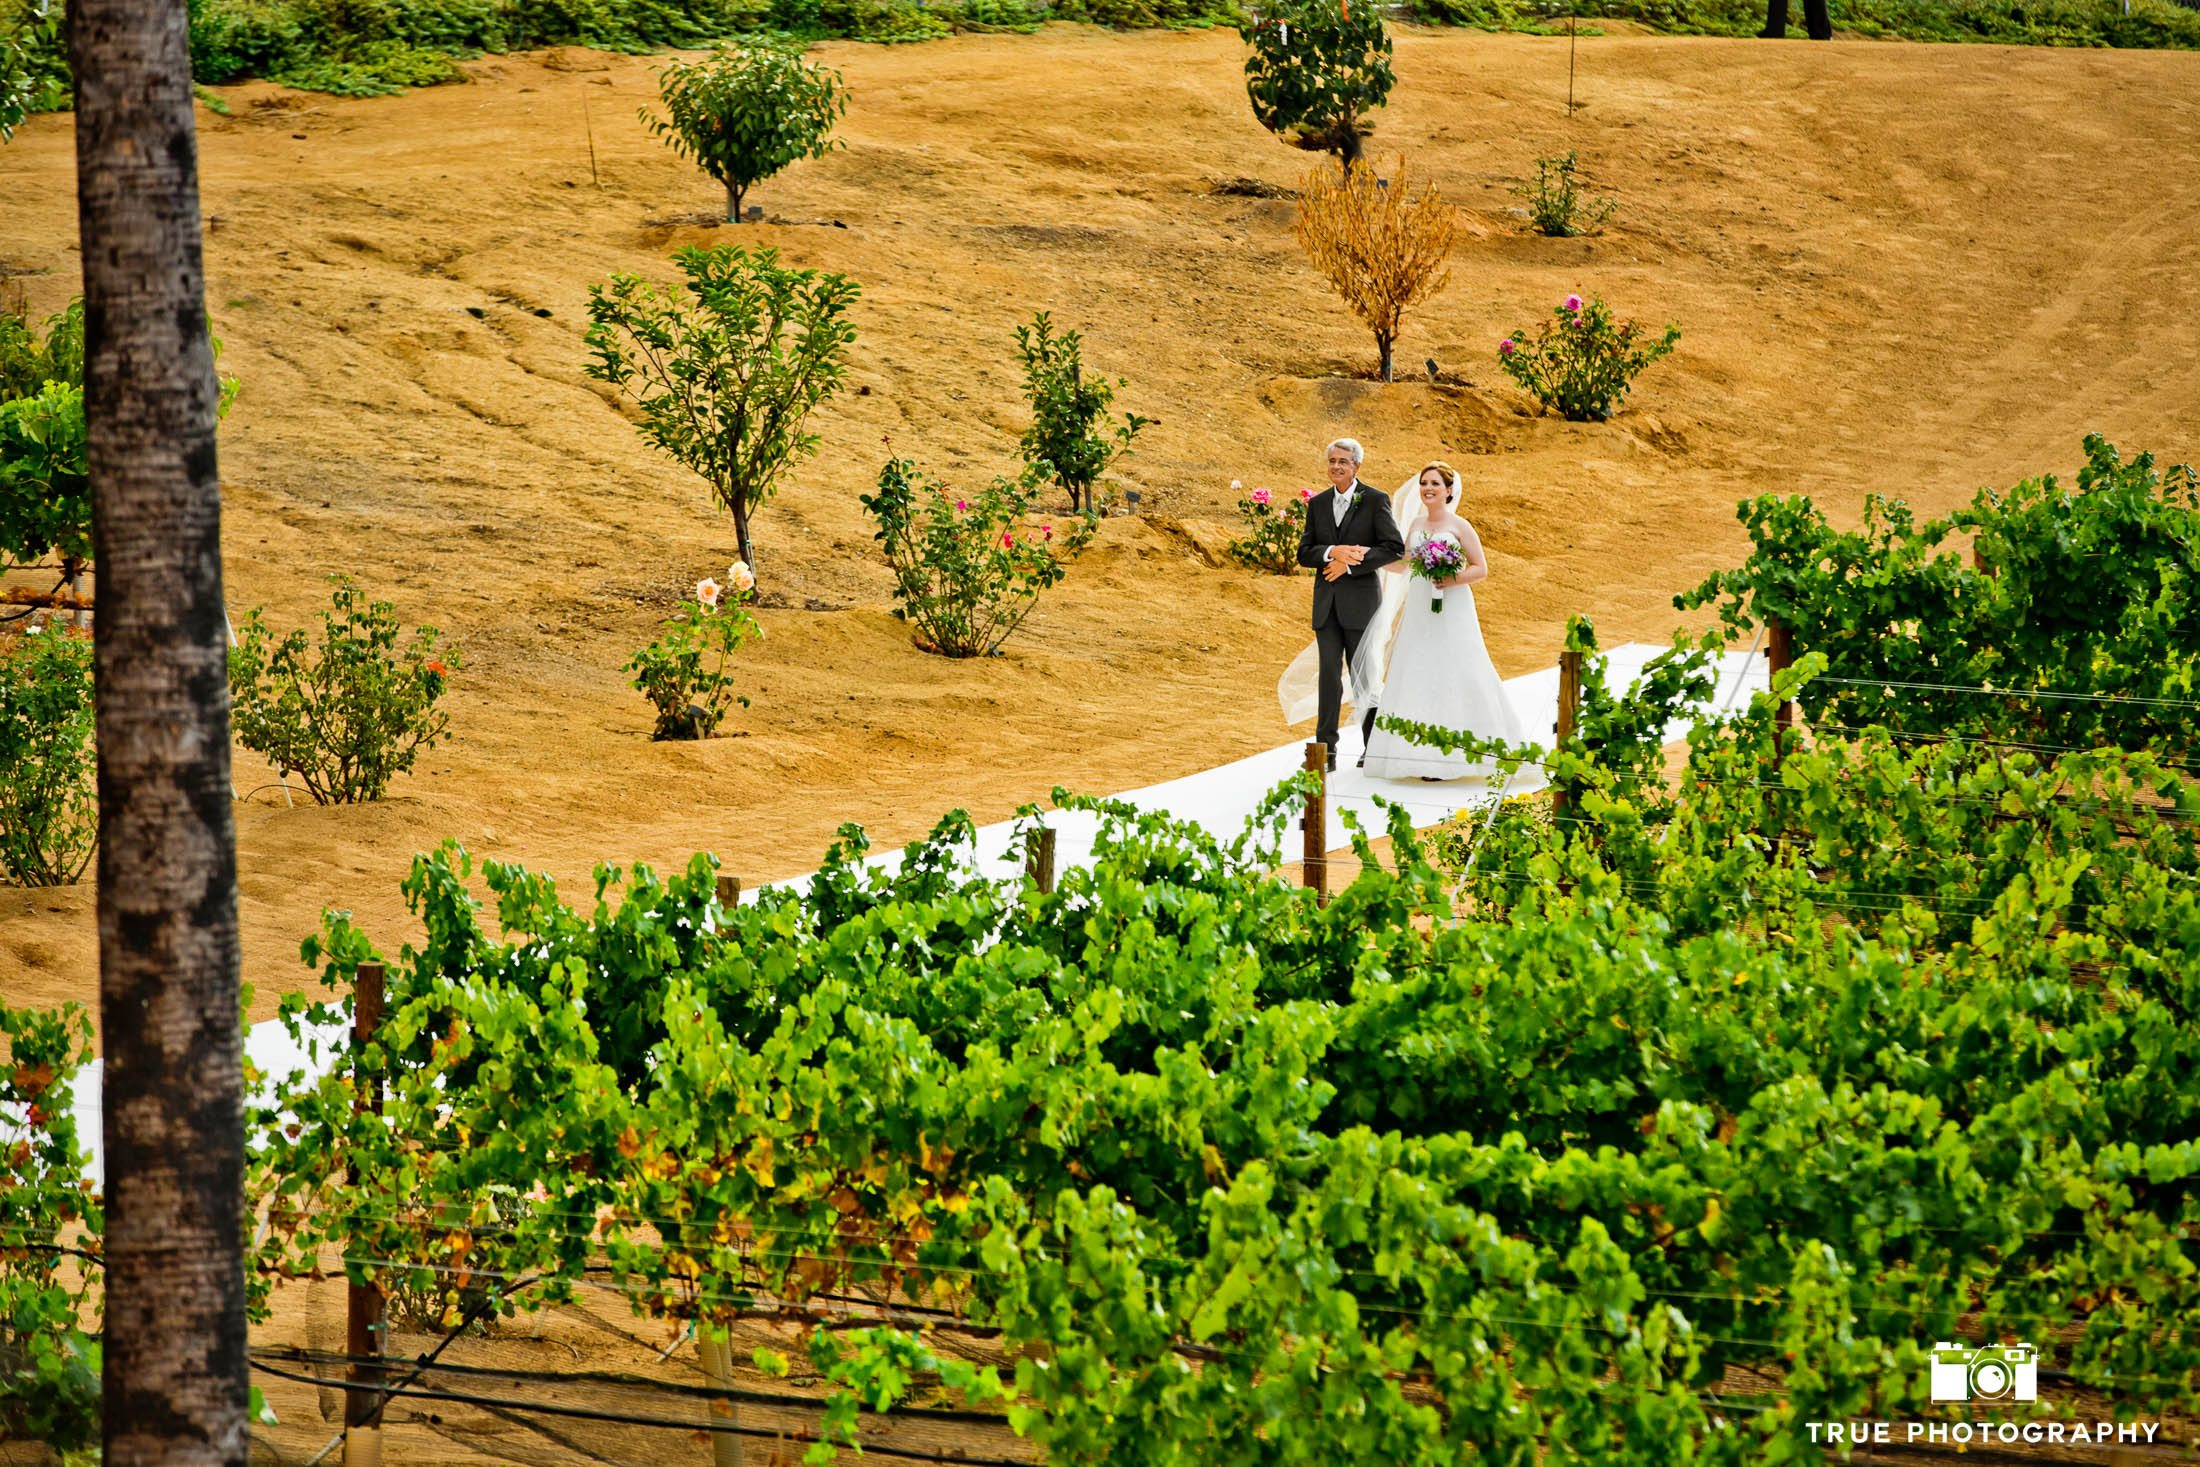 Dad holding hands with Bride as they walk down the aisle at vineyard ceremony